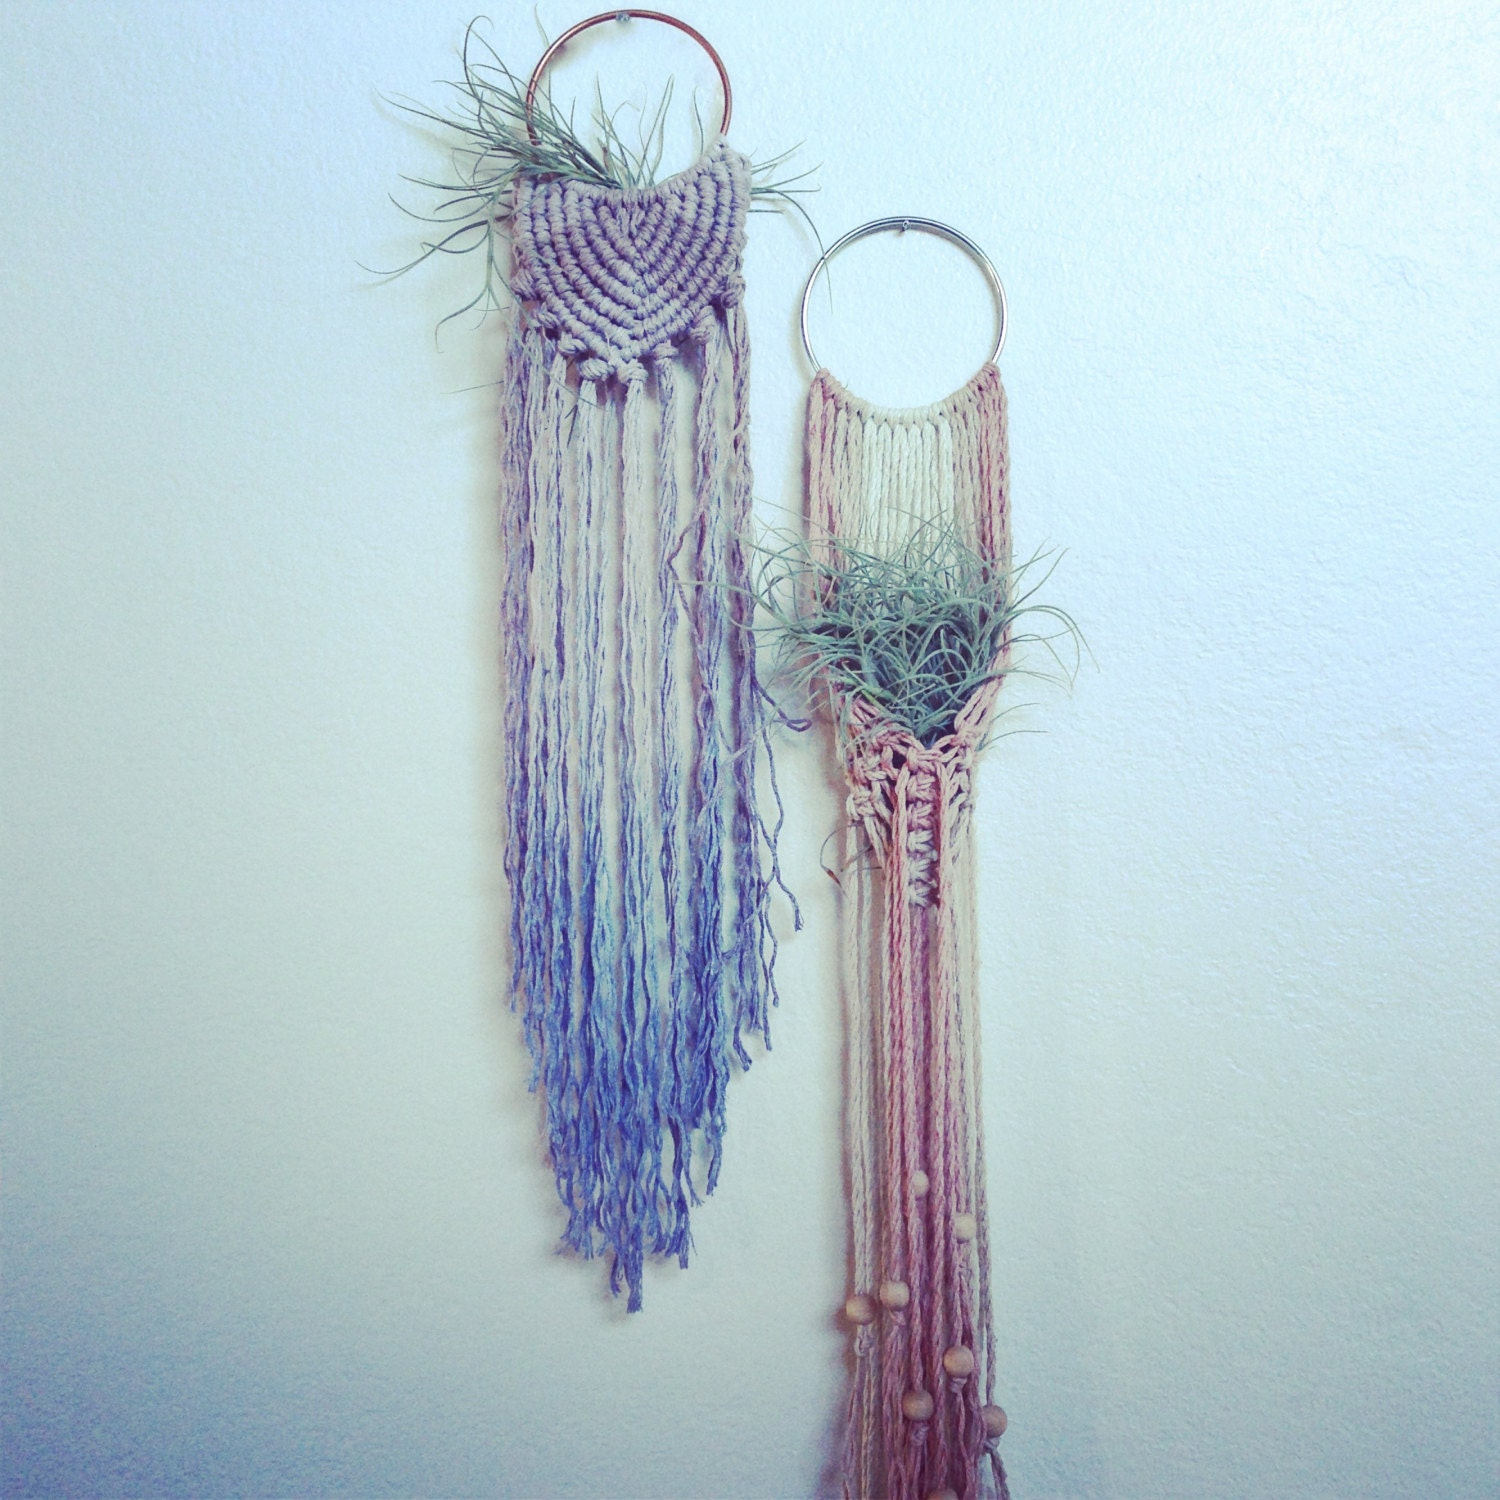 Macrame Air Plant Hangers Blue Grey Woven Ombre Or